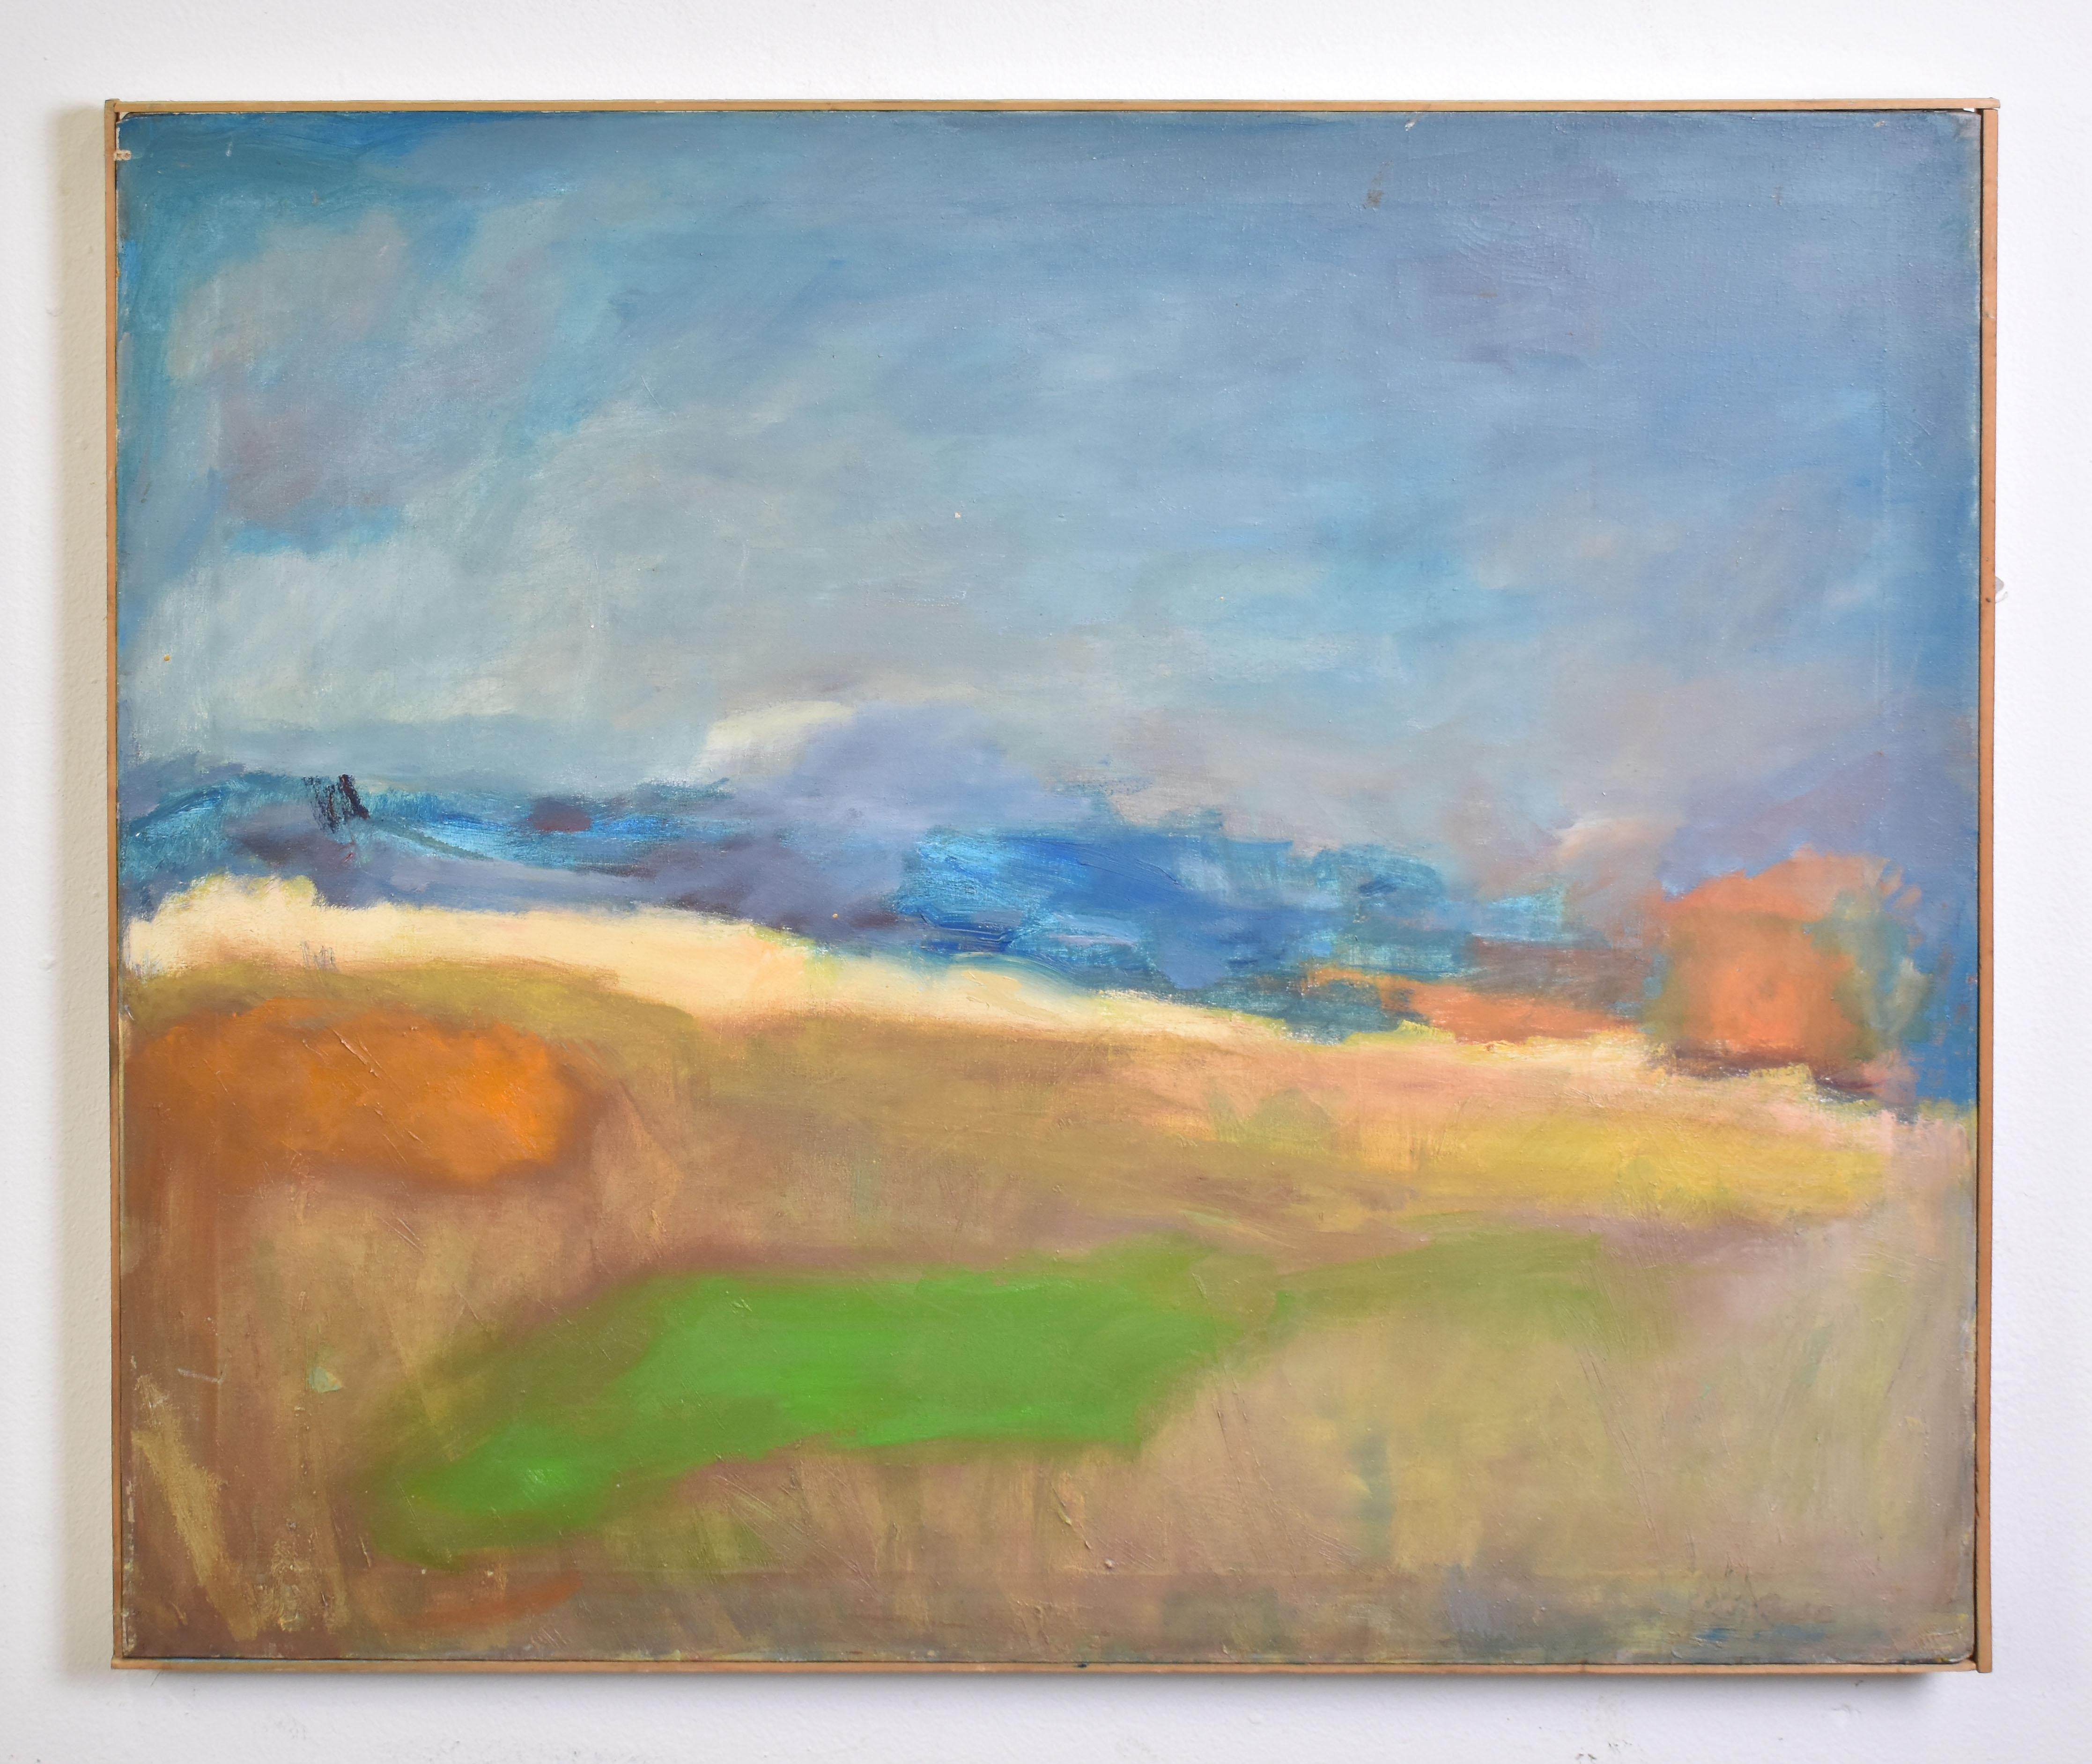 Antique American School Abstract Beach Landscape Original Framed Oil Painting